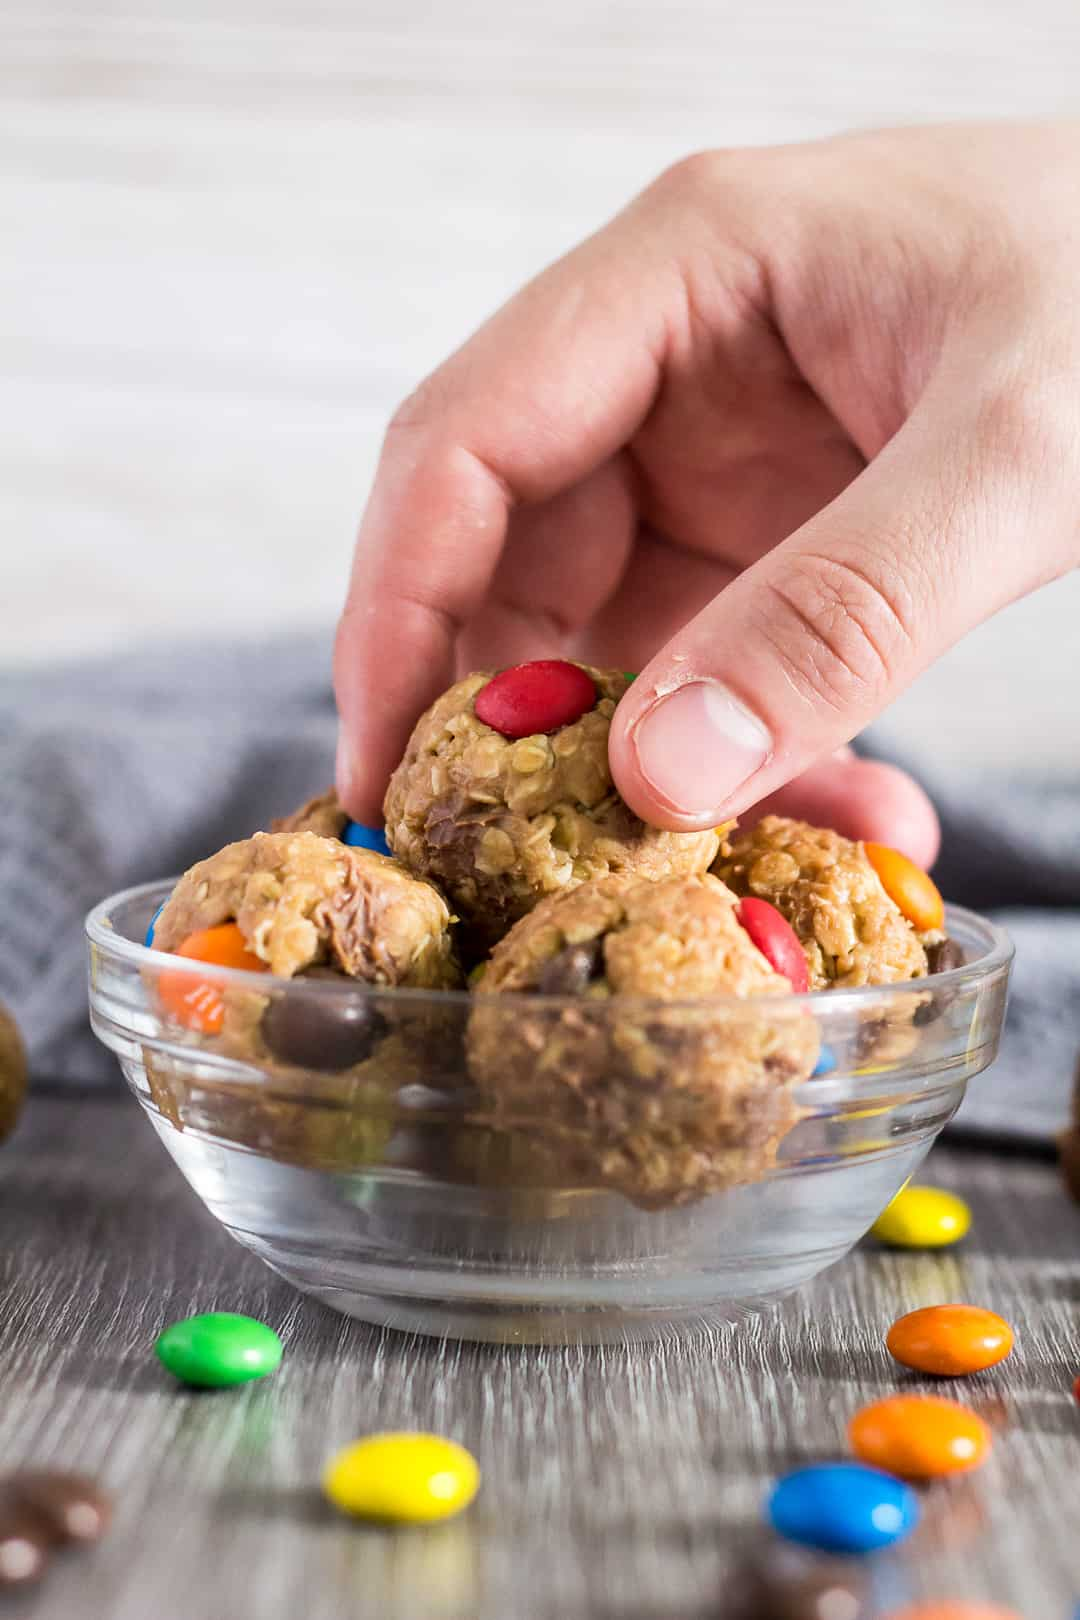 No-Bake Monster Cookie Bites in a small glass bowl. One being picked up by hand.